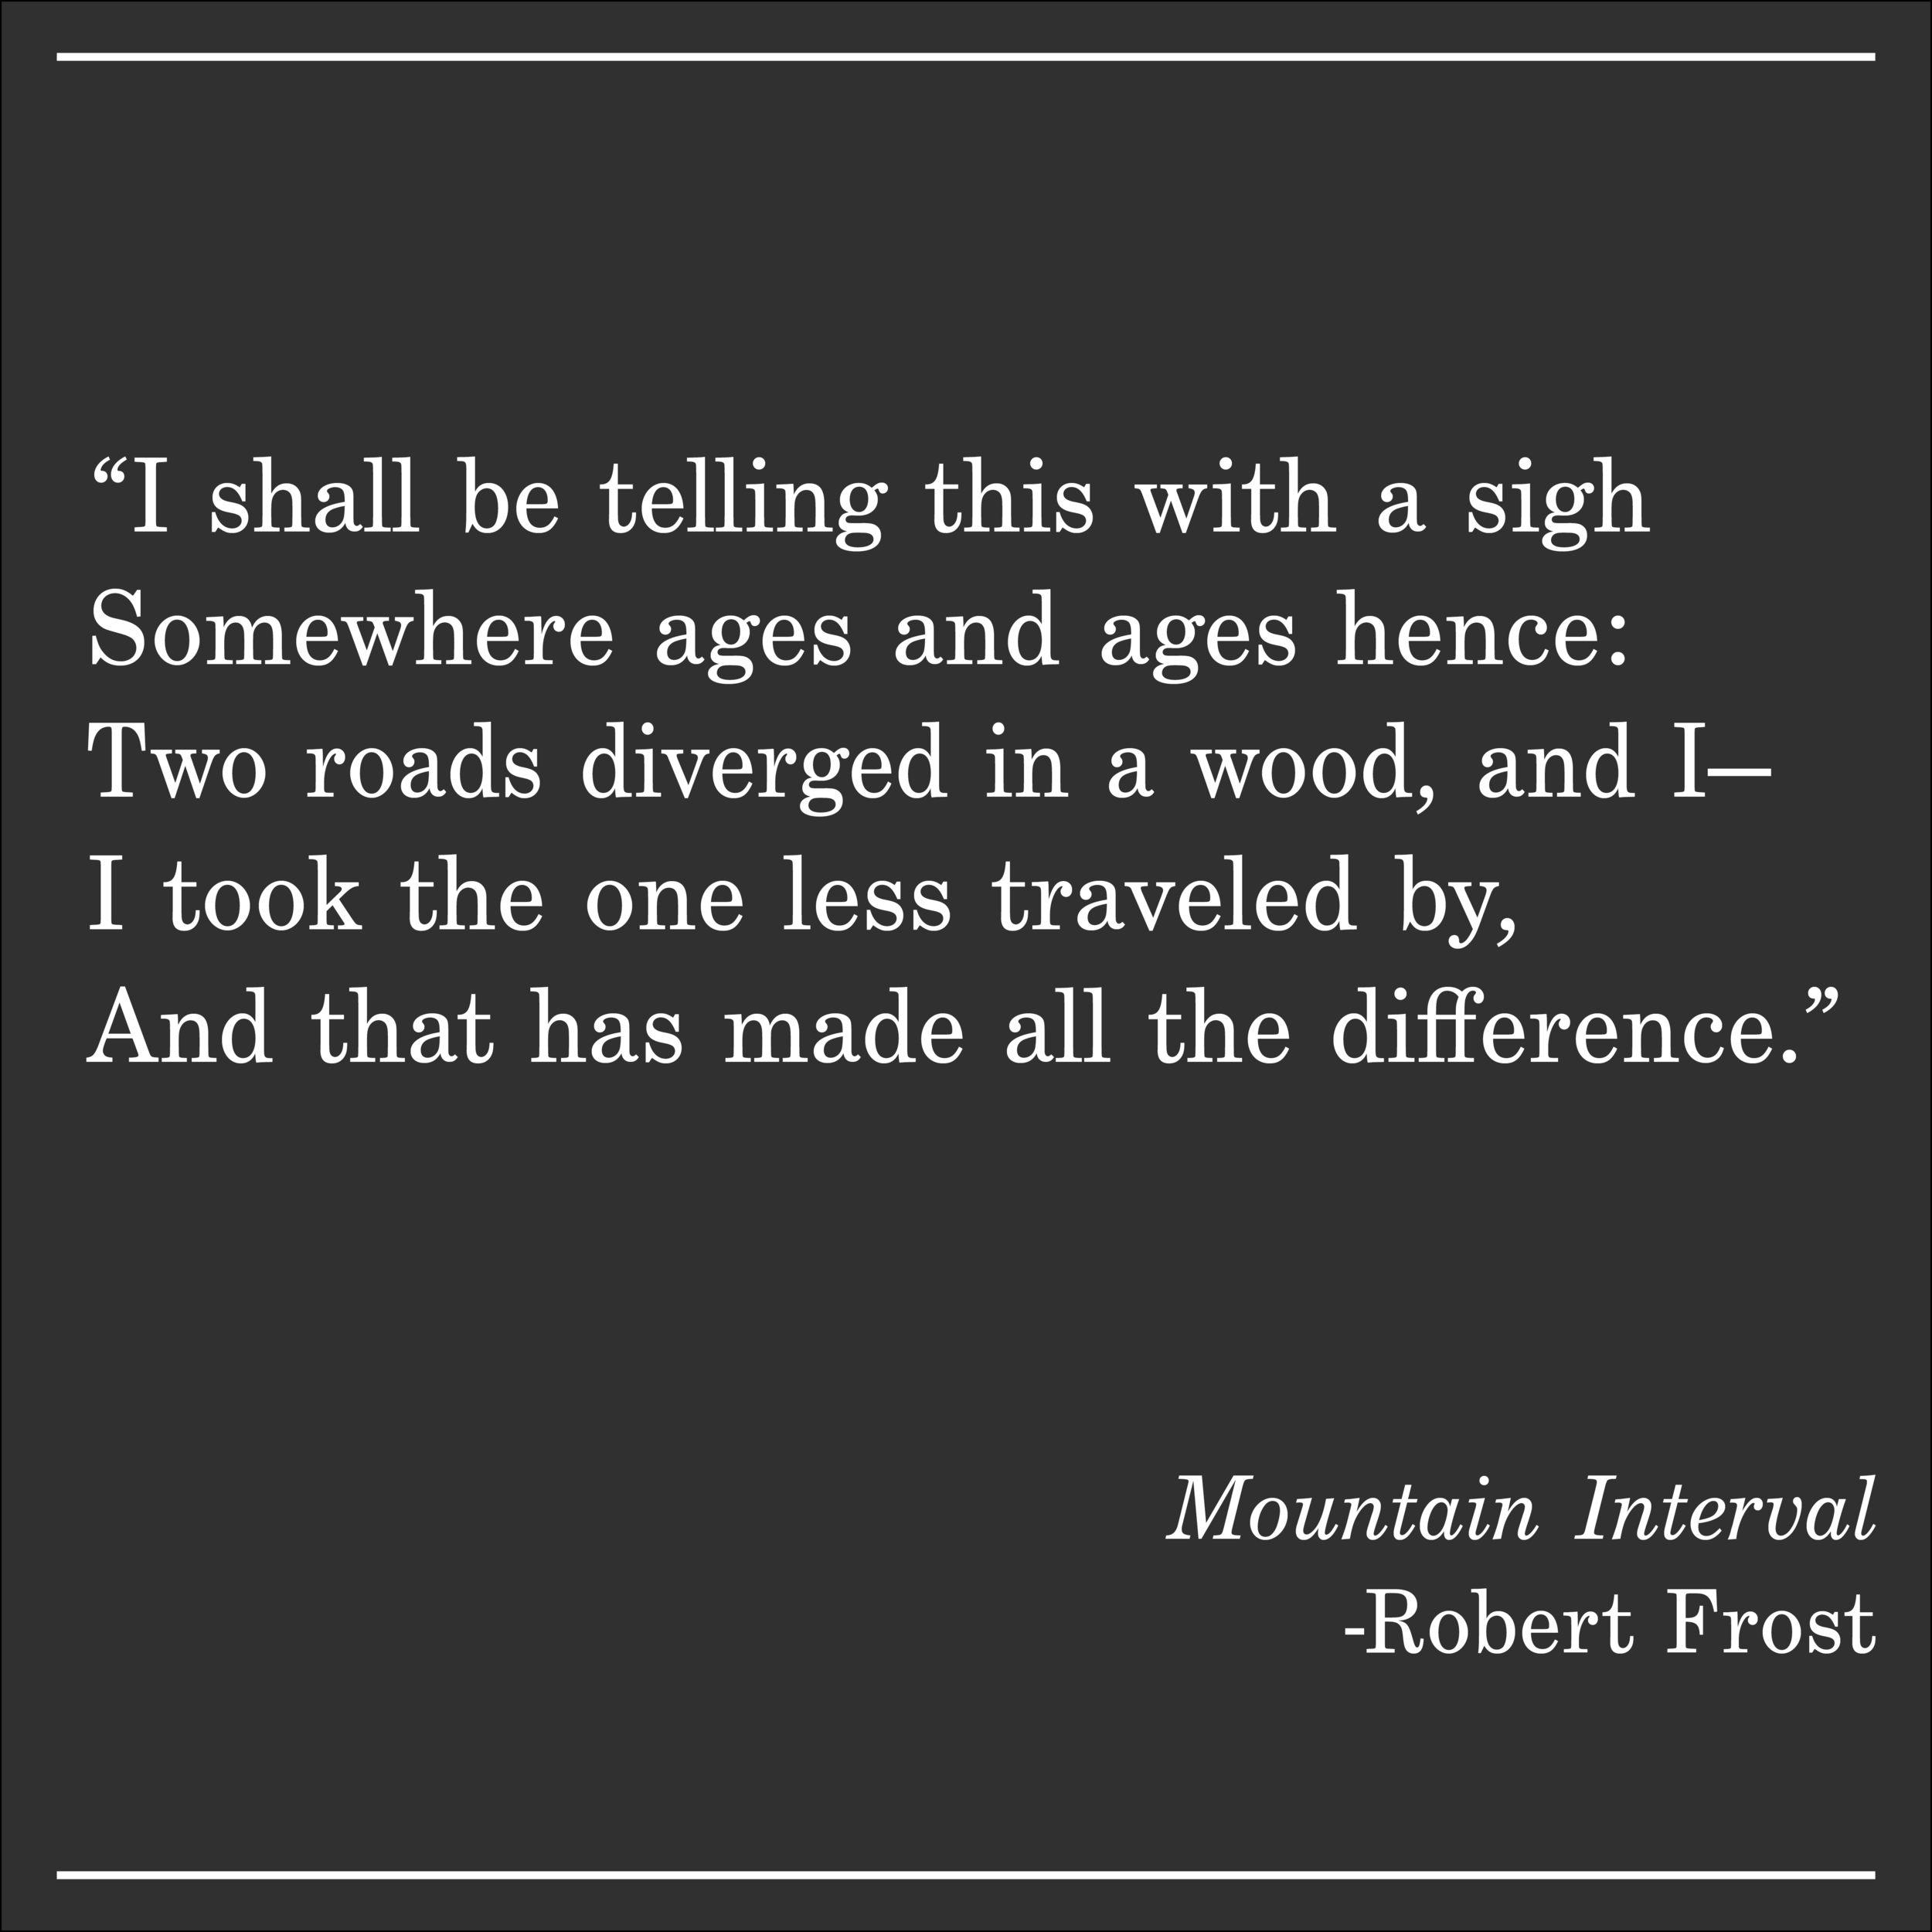 Daily Quote Mountain Interval by Robert Frost